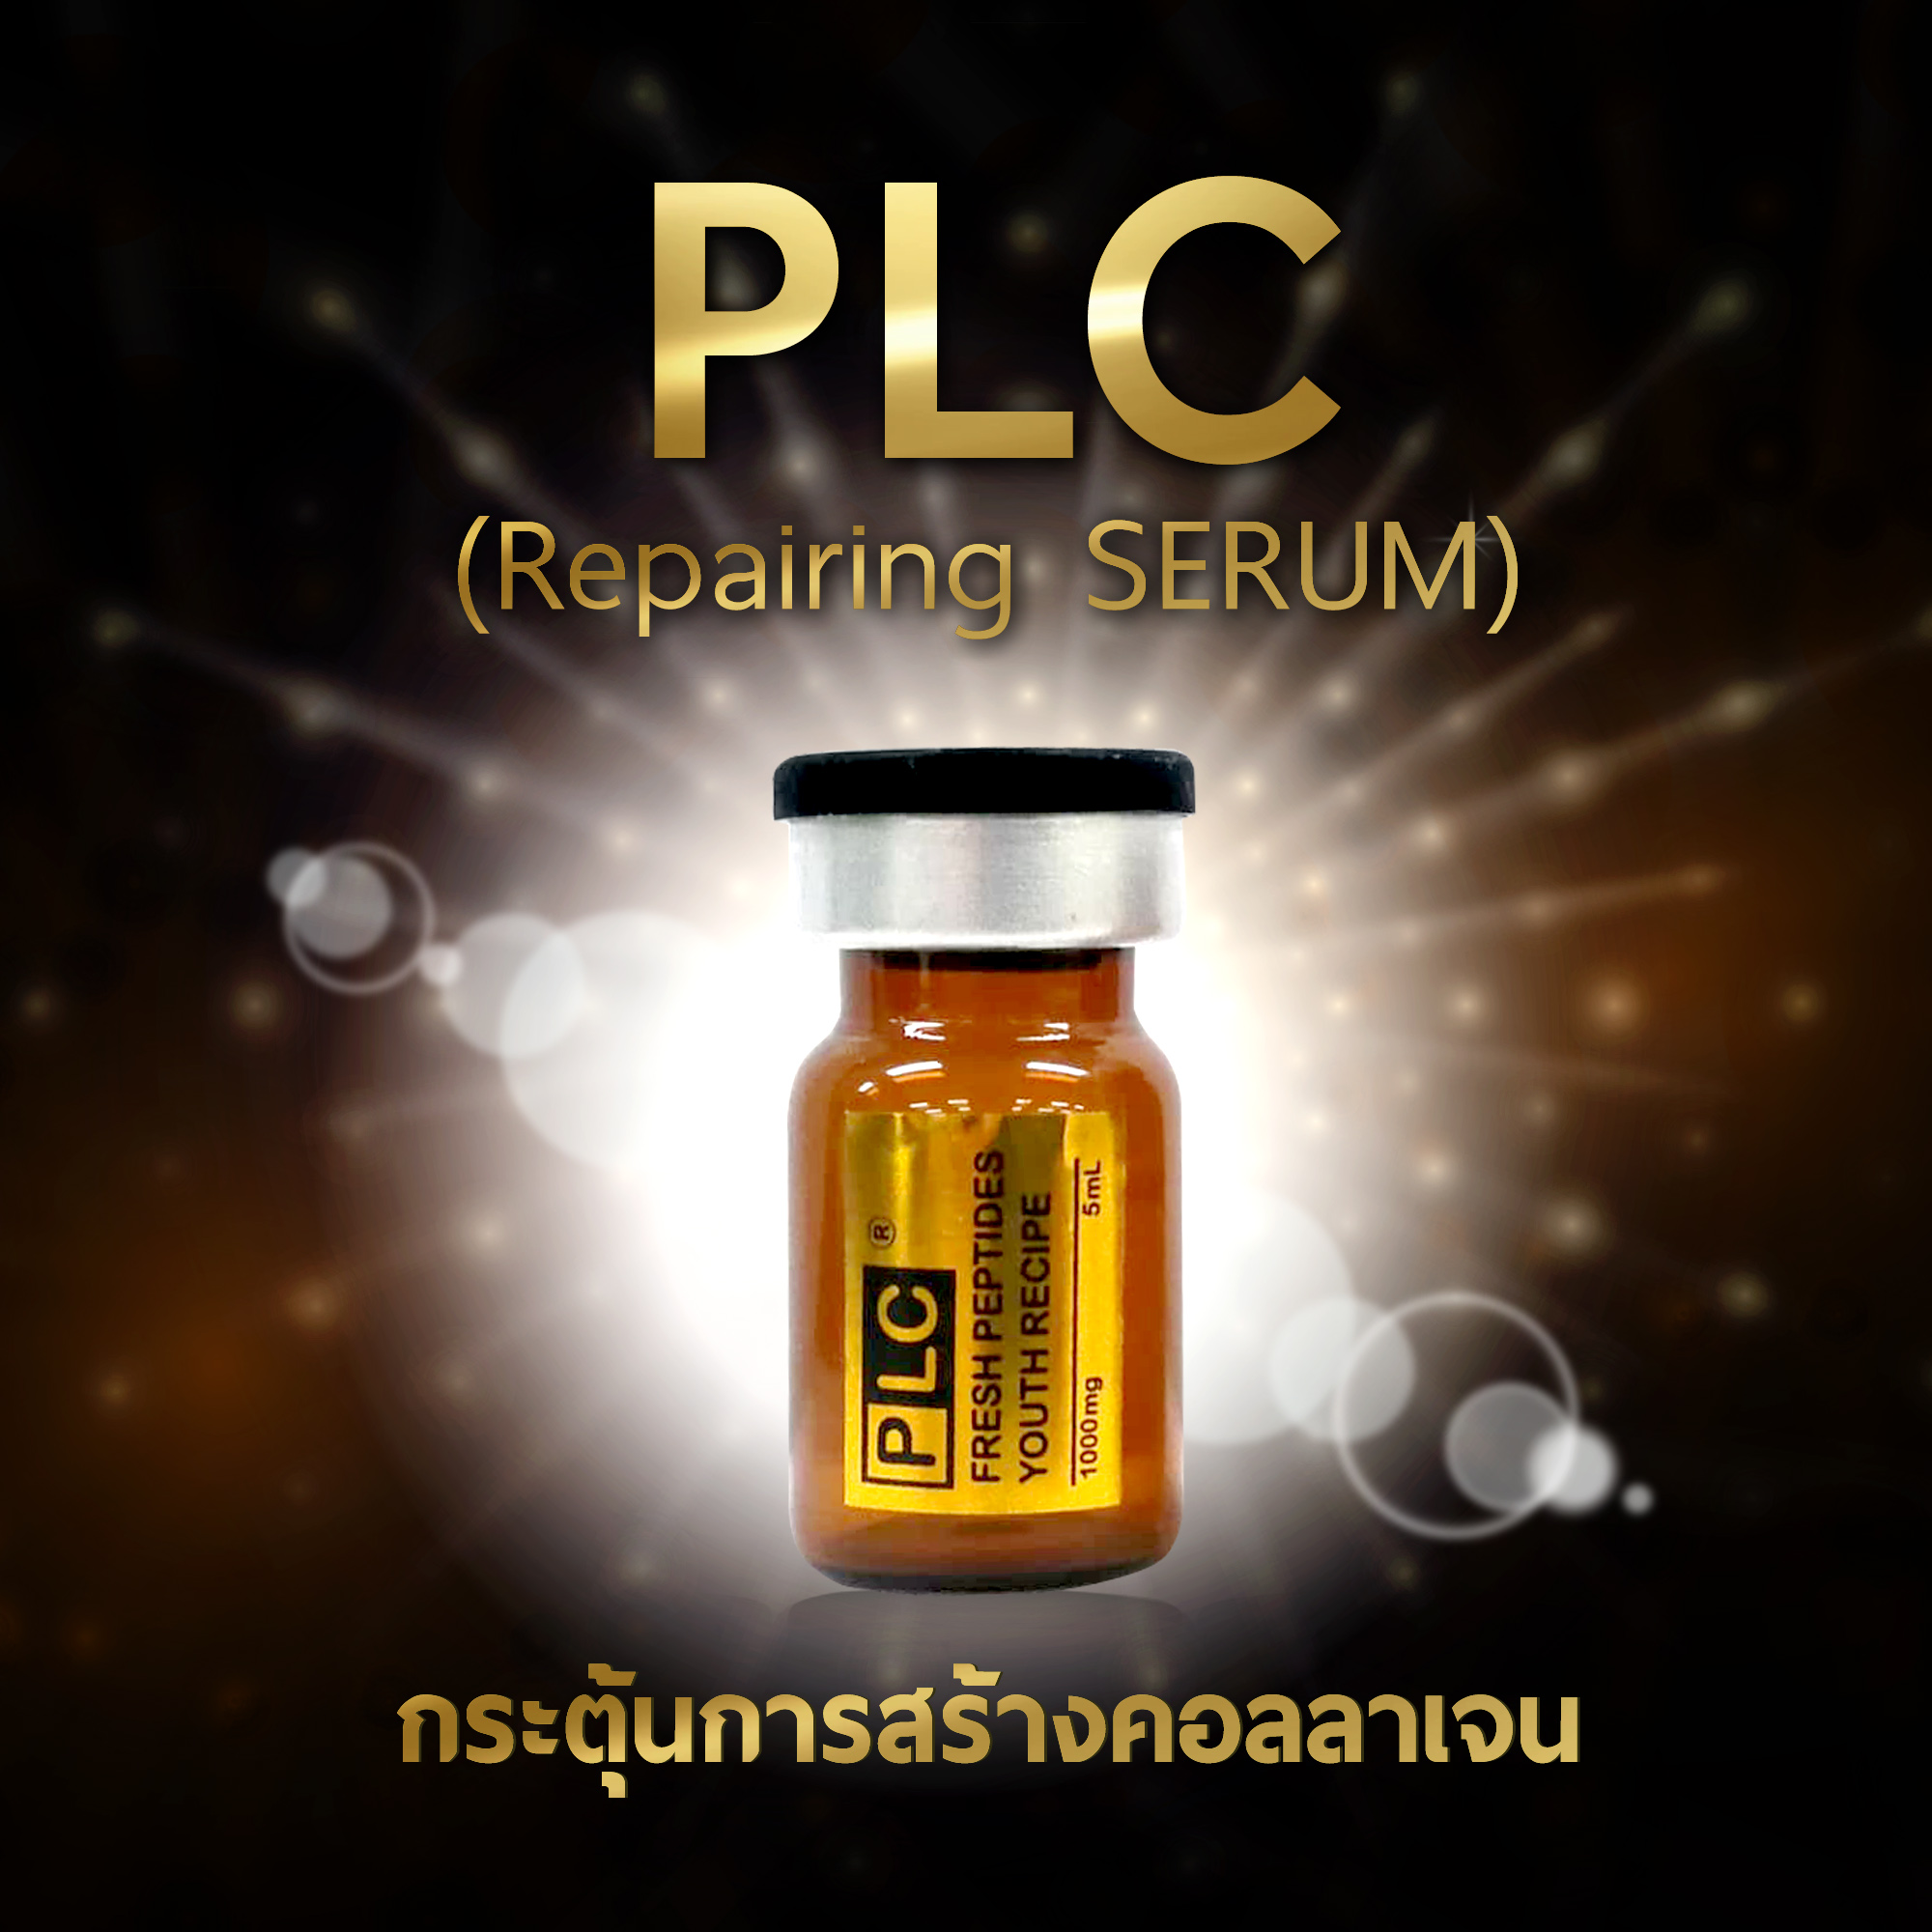 PLC FRESH PLACENTA EXTRACT, 5 ML.